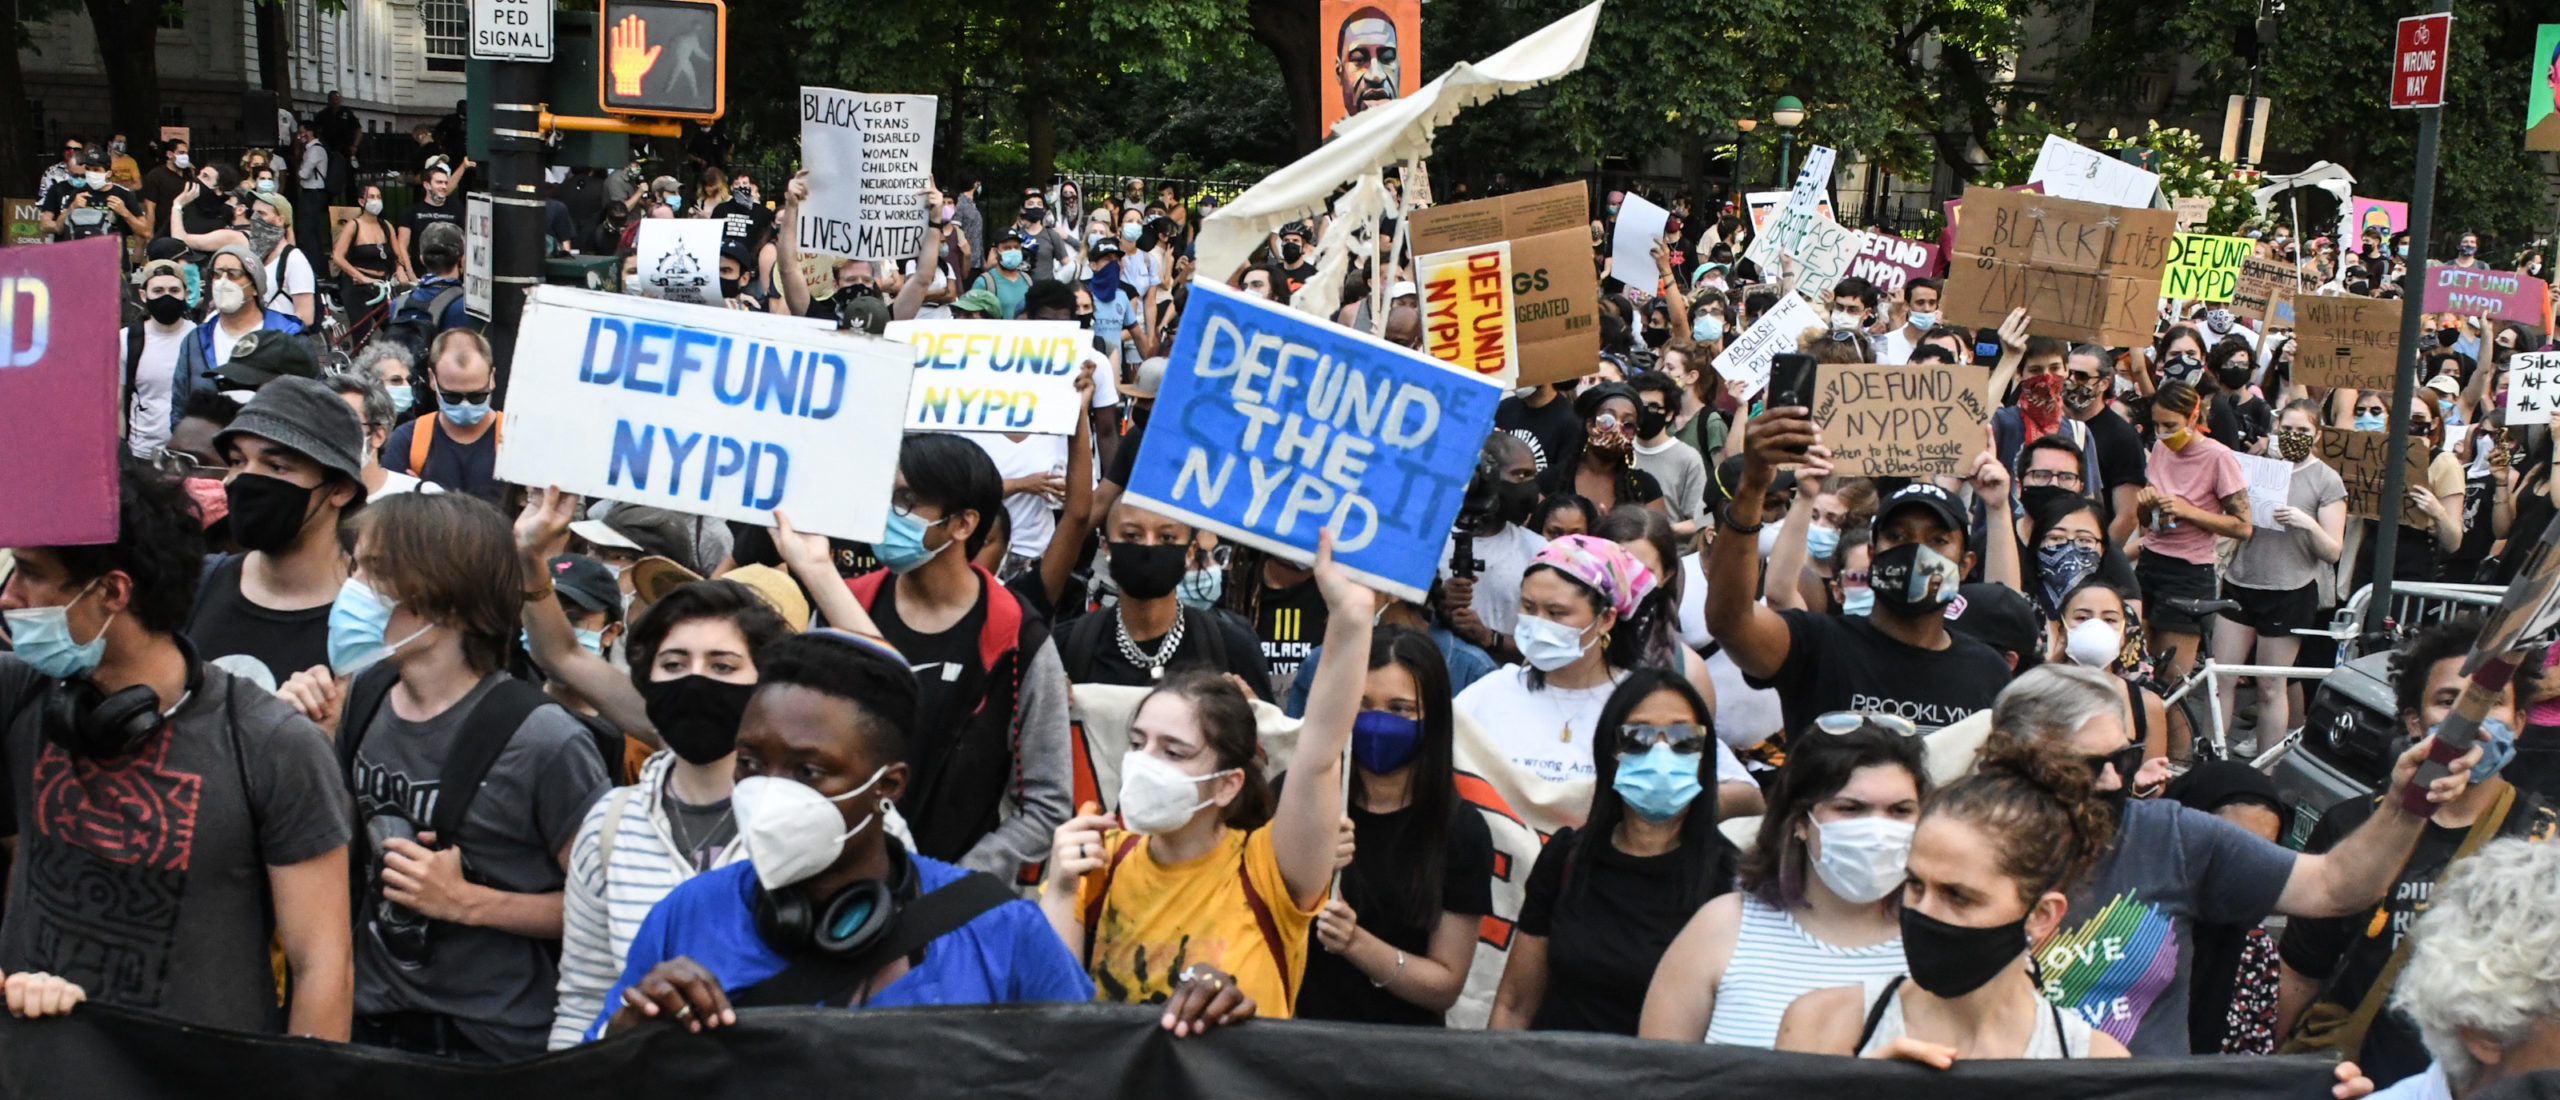 People begin a march out of a protest encampment on June 25, 2020 in a park near City Hall in New York City. Demonstrators advocating for the New York City Police Department to be defunded by $1 billion have been camped out for two nights. (Photo by Stephanie Keith/Getty Images)